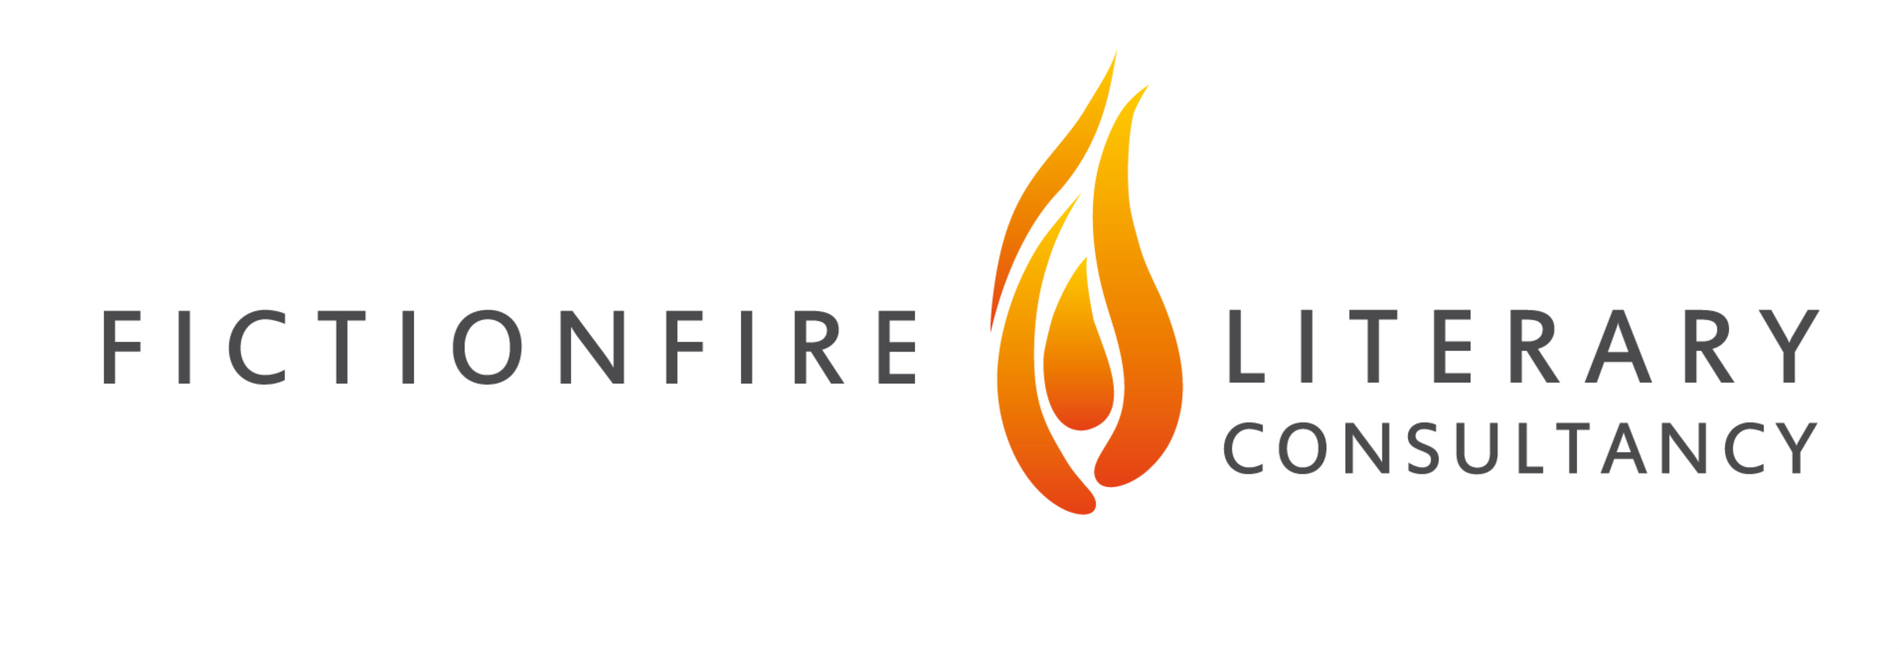 Fictionfire Literary Consultancy landscape logo with white background 1899x649 px.png